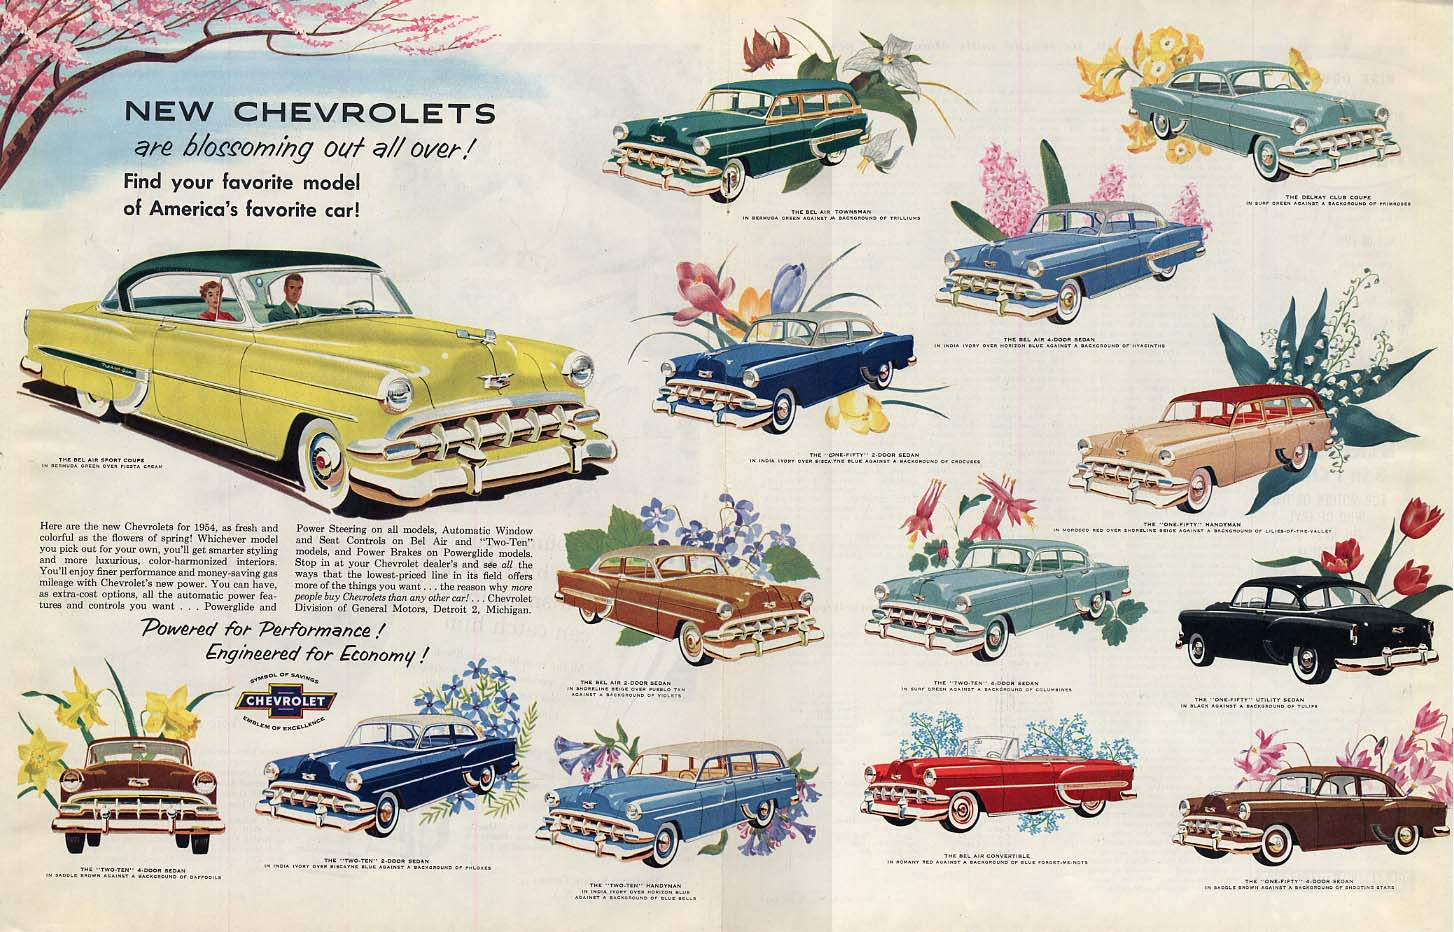 Blossoming out all over! Chevrolet full-line ad 1954 Col